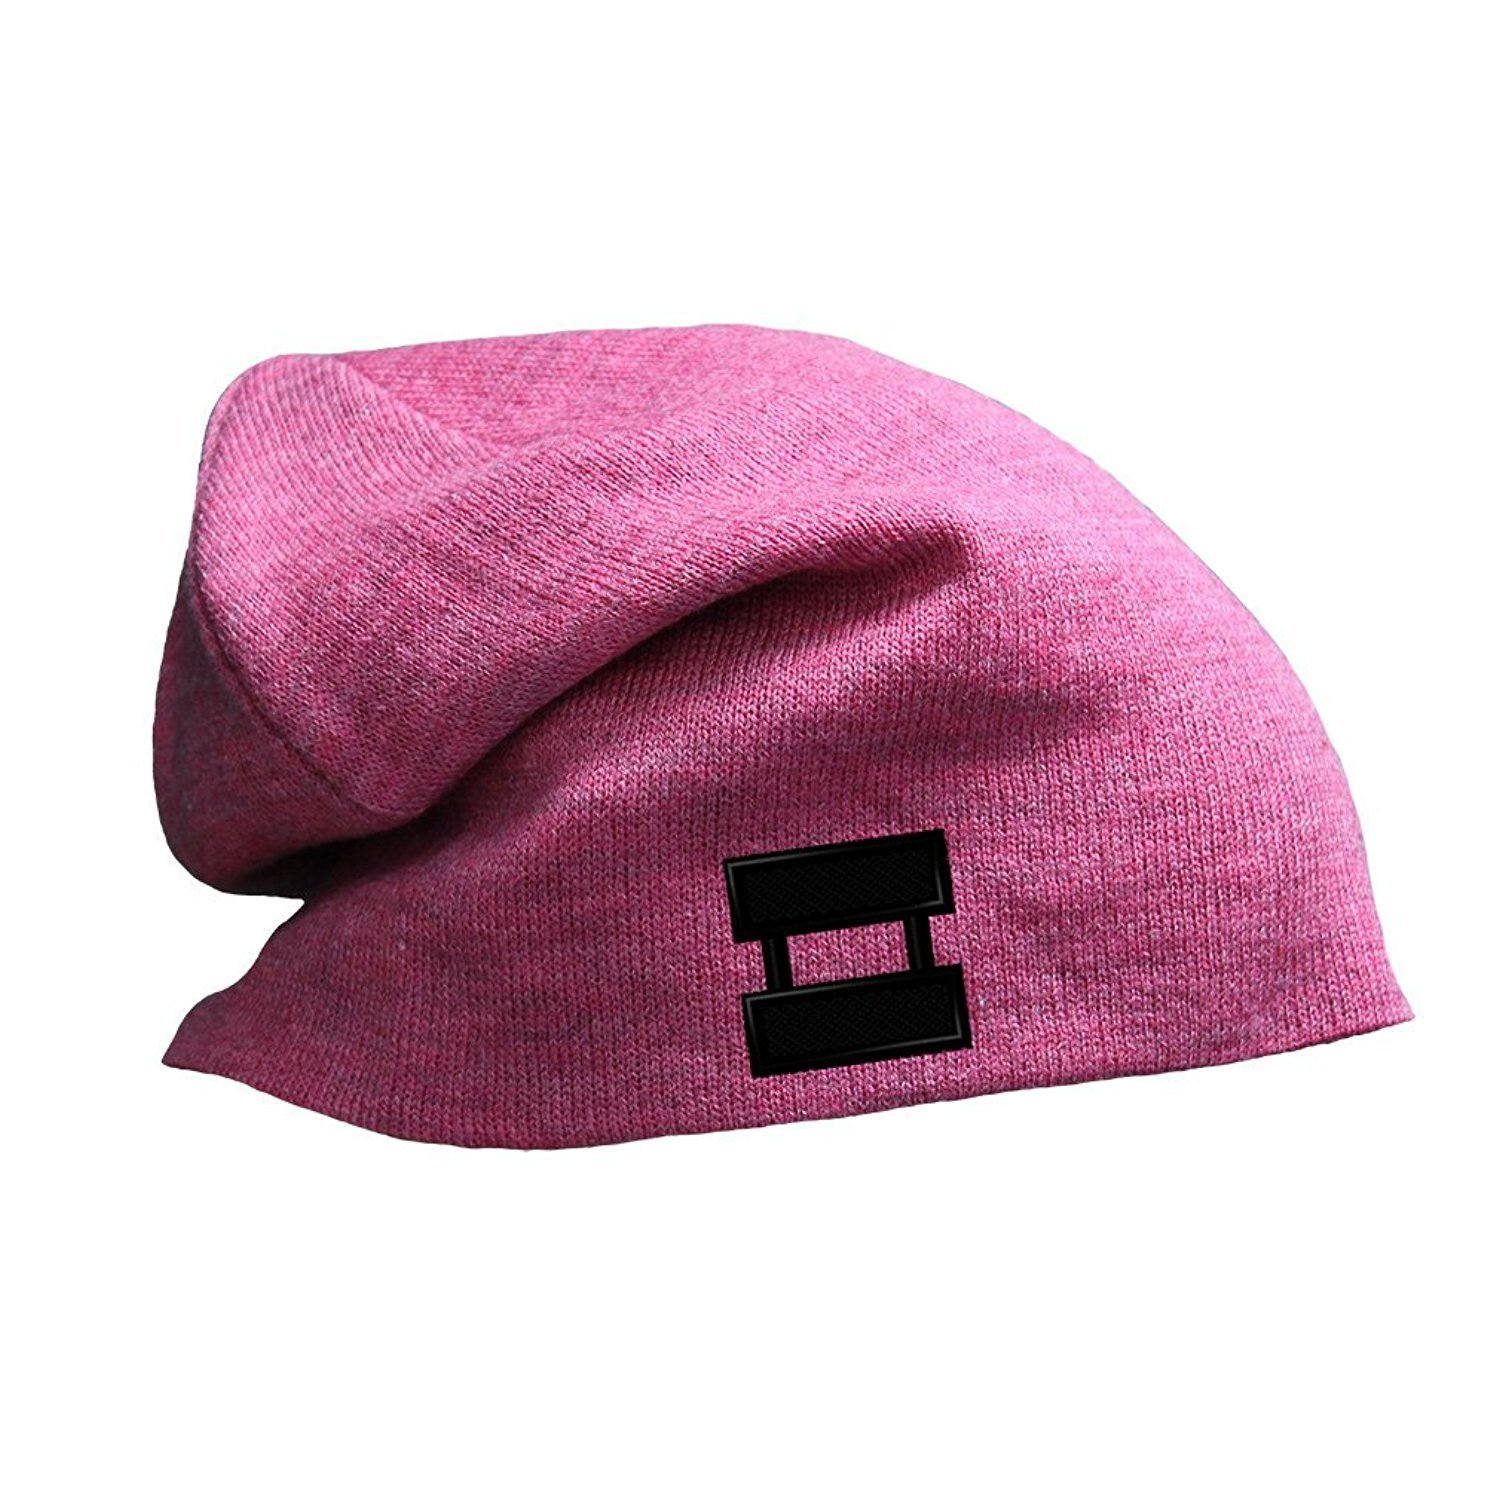 015797e7 Get Quotations · Brilliant Army Military Captain Embroidery Slouch Long  Beanie Skully Hat